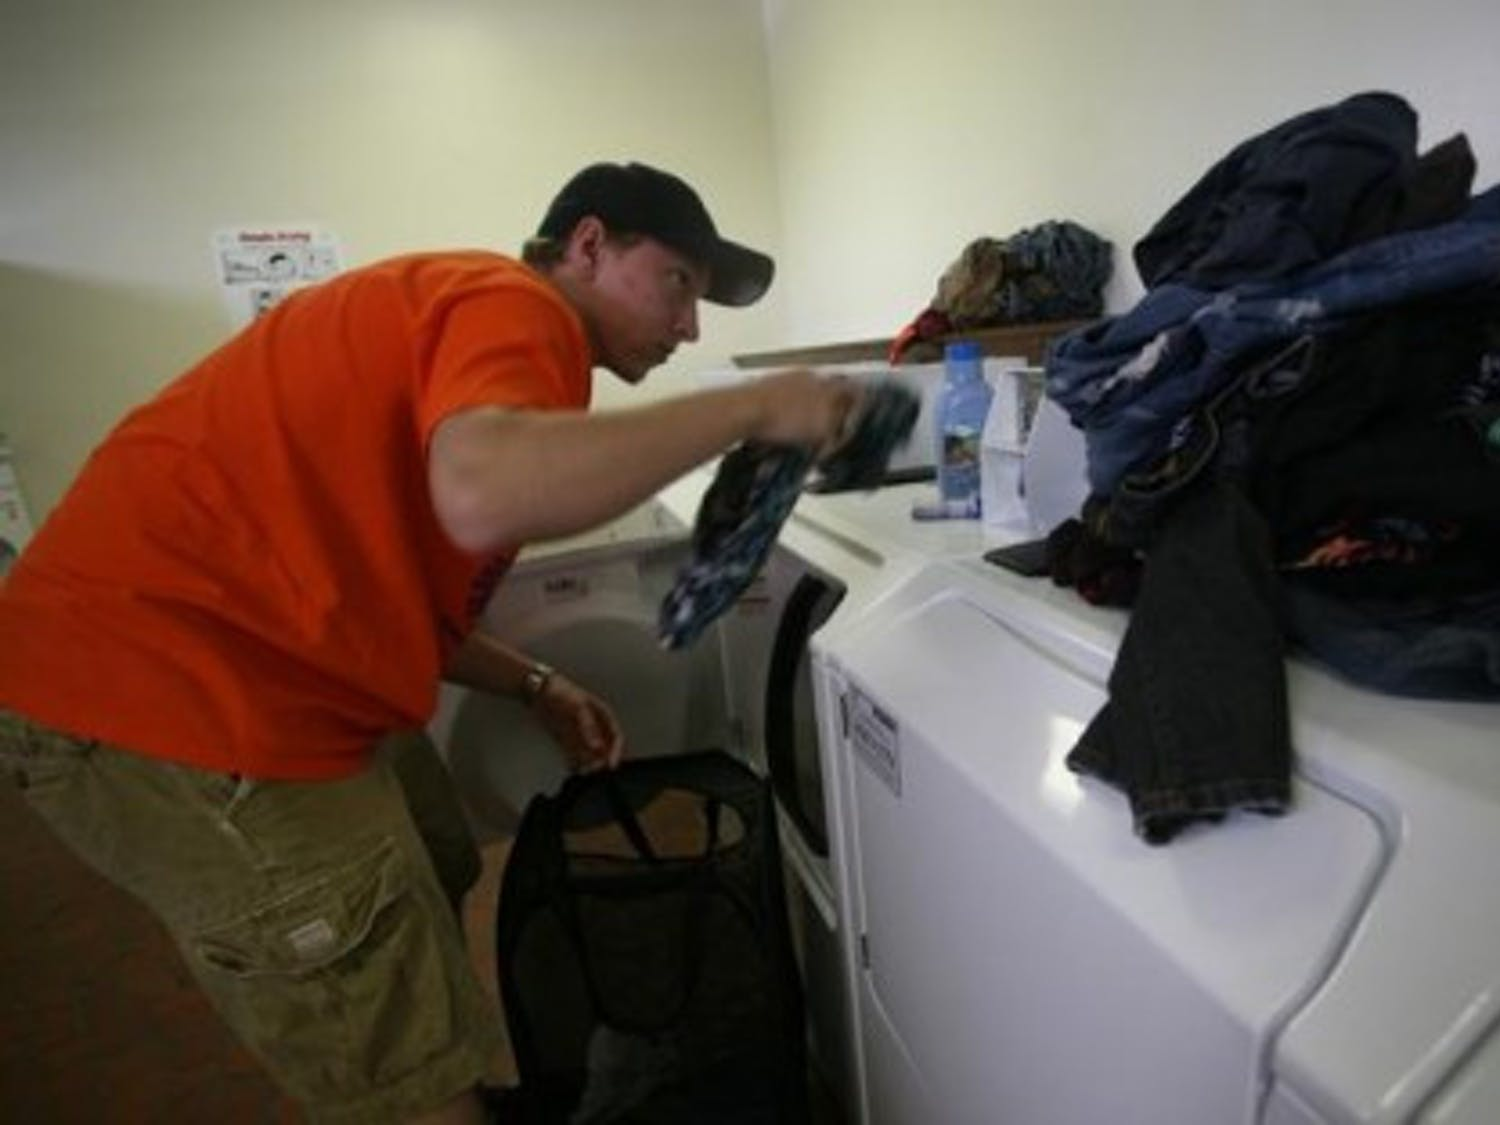 UF sophomore Chris Saunders separates his dark from his light clothes in the laundry room of Beaty Towers West on Thursday, Sept. 7, 2007.